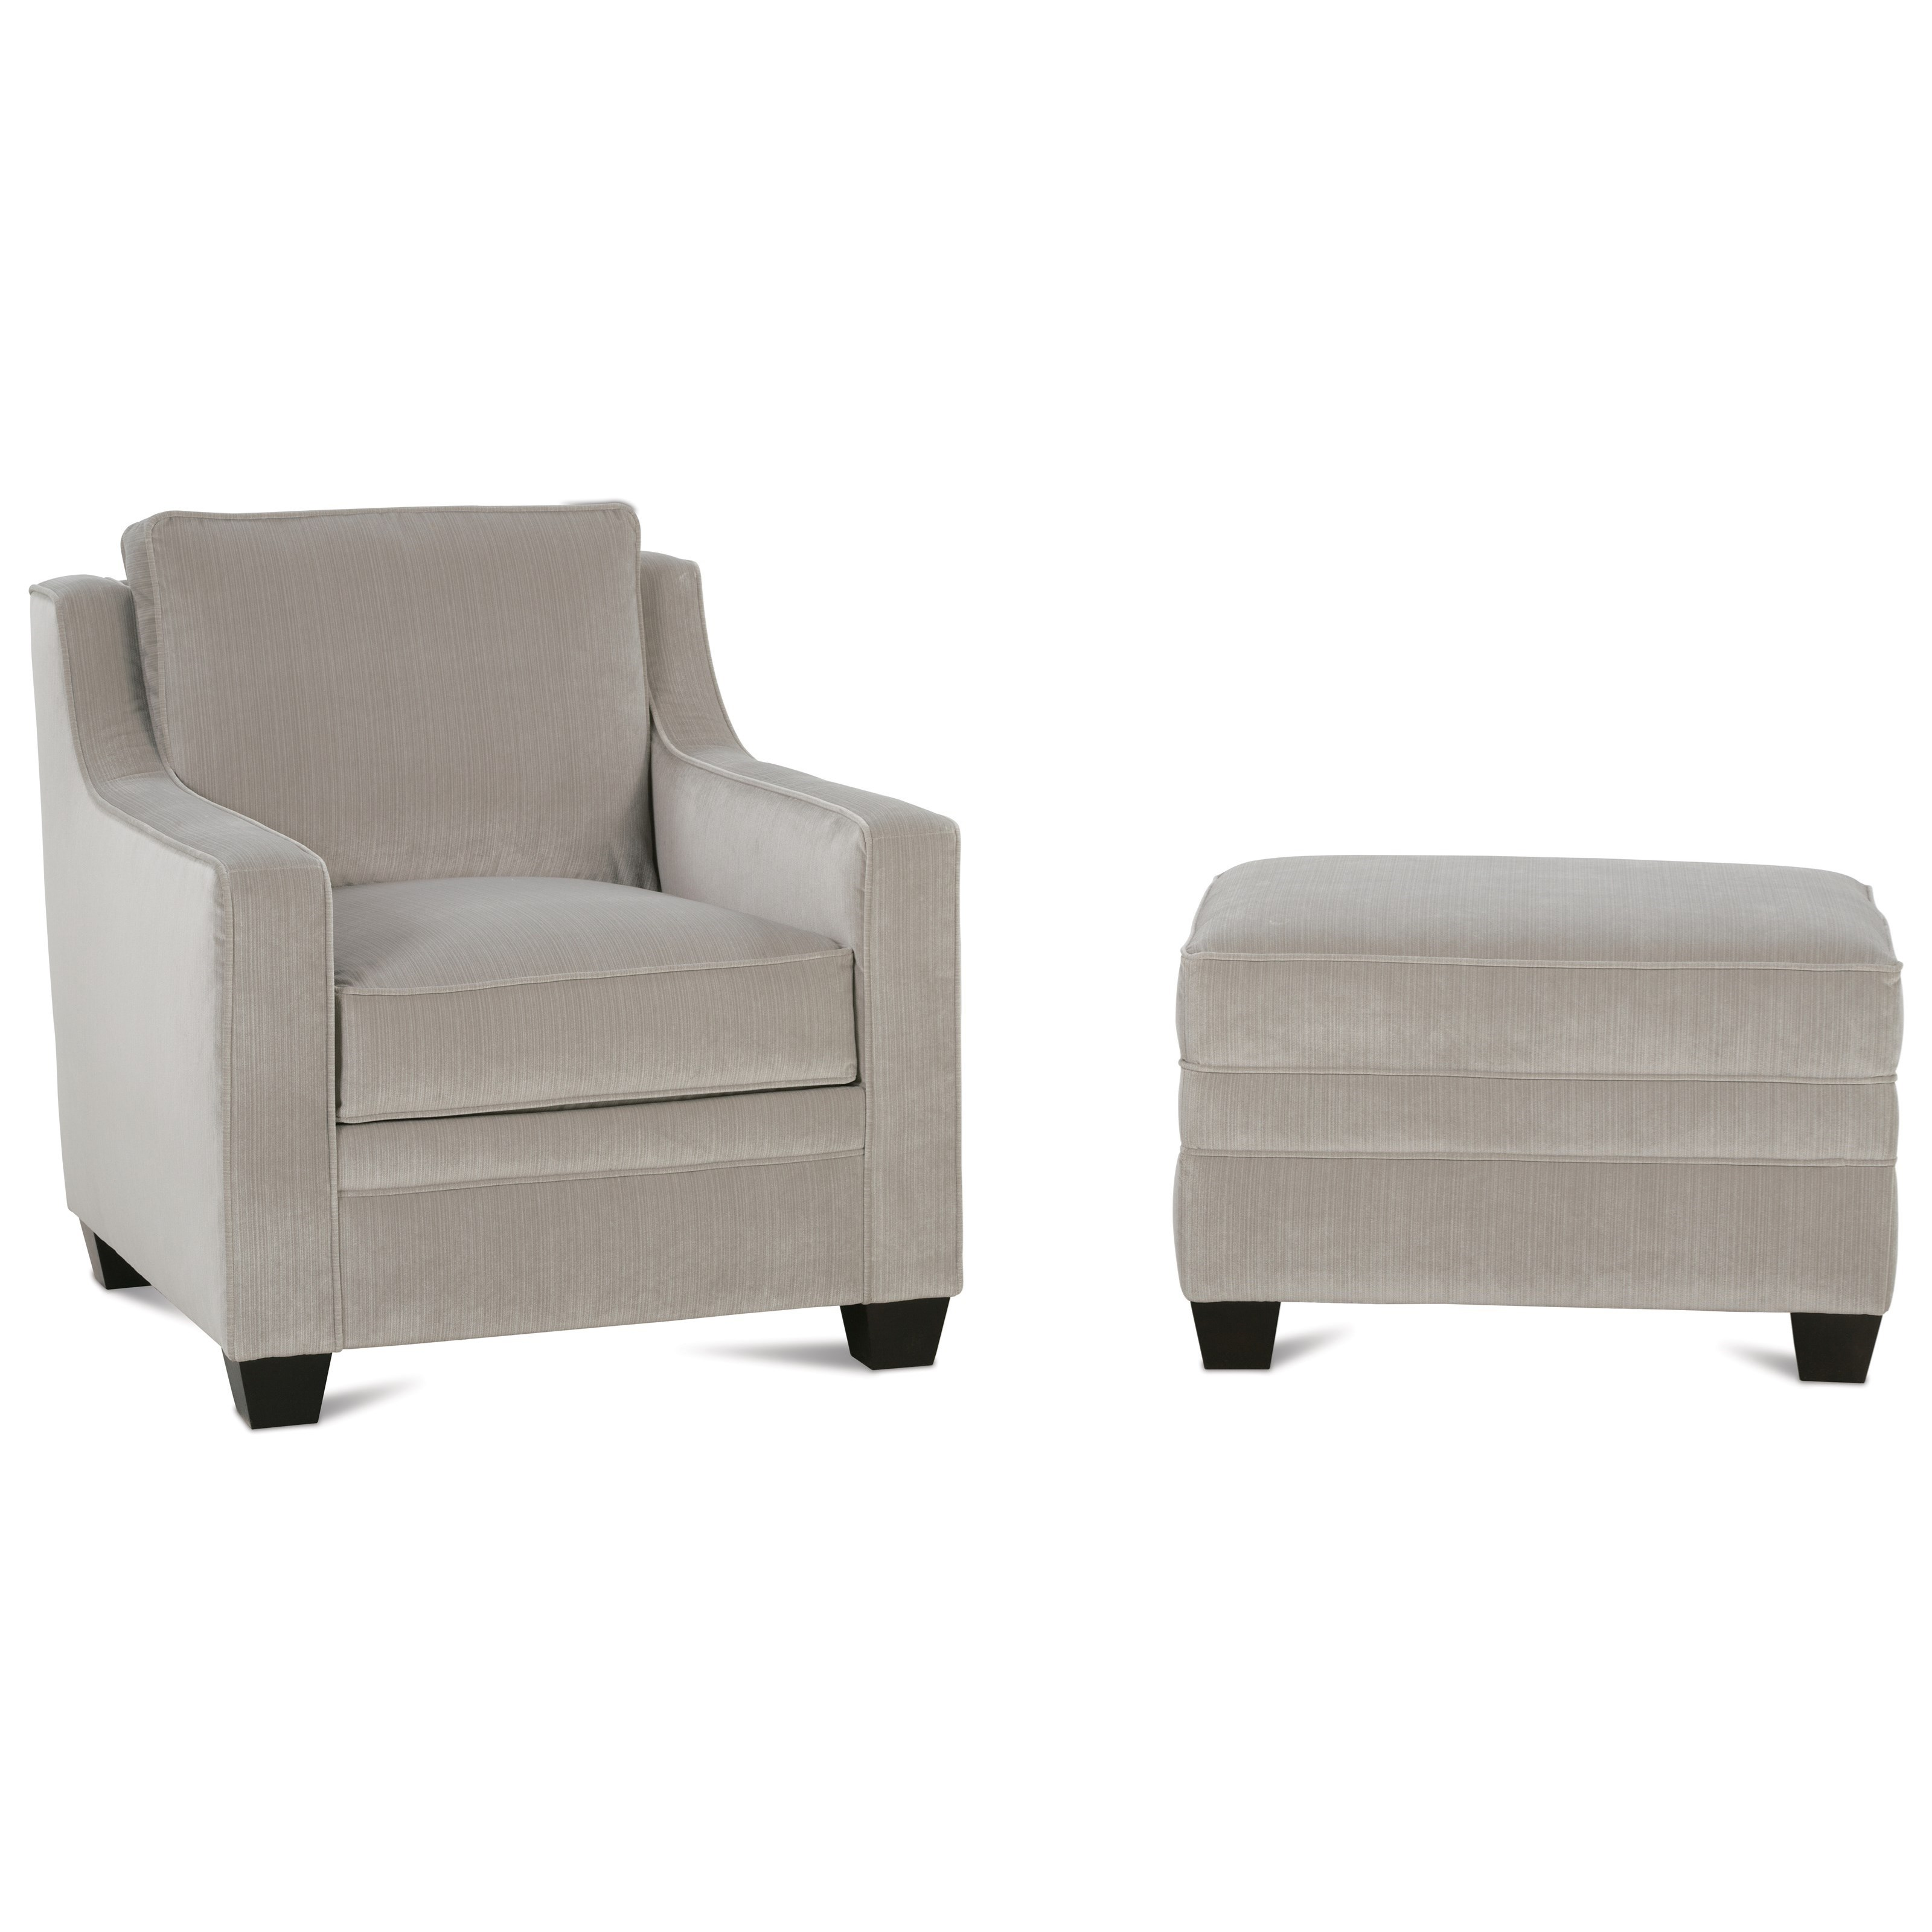 Fuller Chair and Ottoman Set by Rowe at Baer's Furniture